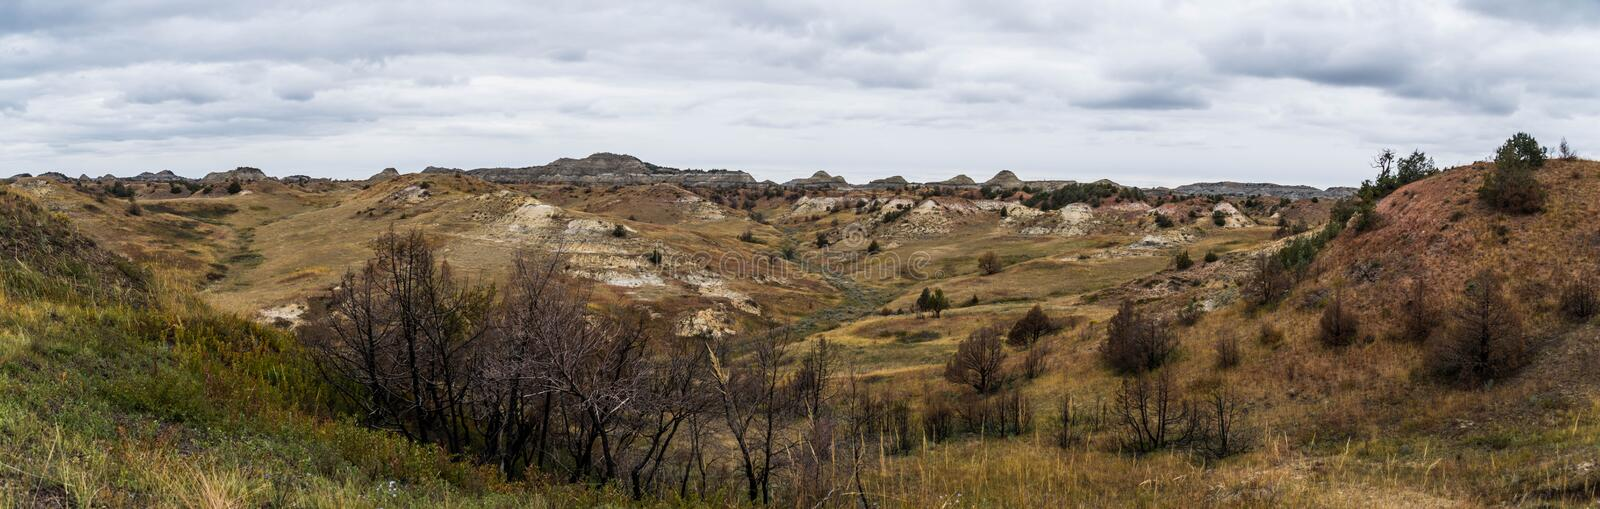 Landscape Views of Theodore Roosevelt National Park. Theodore Roosevelt National Park takes on a different look in the autumn as the fall colors come out in an stock image